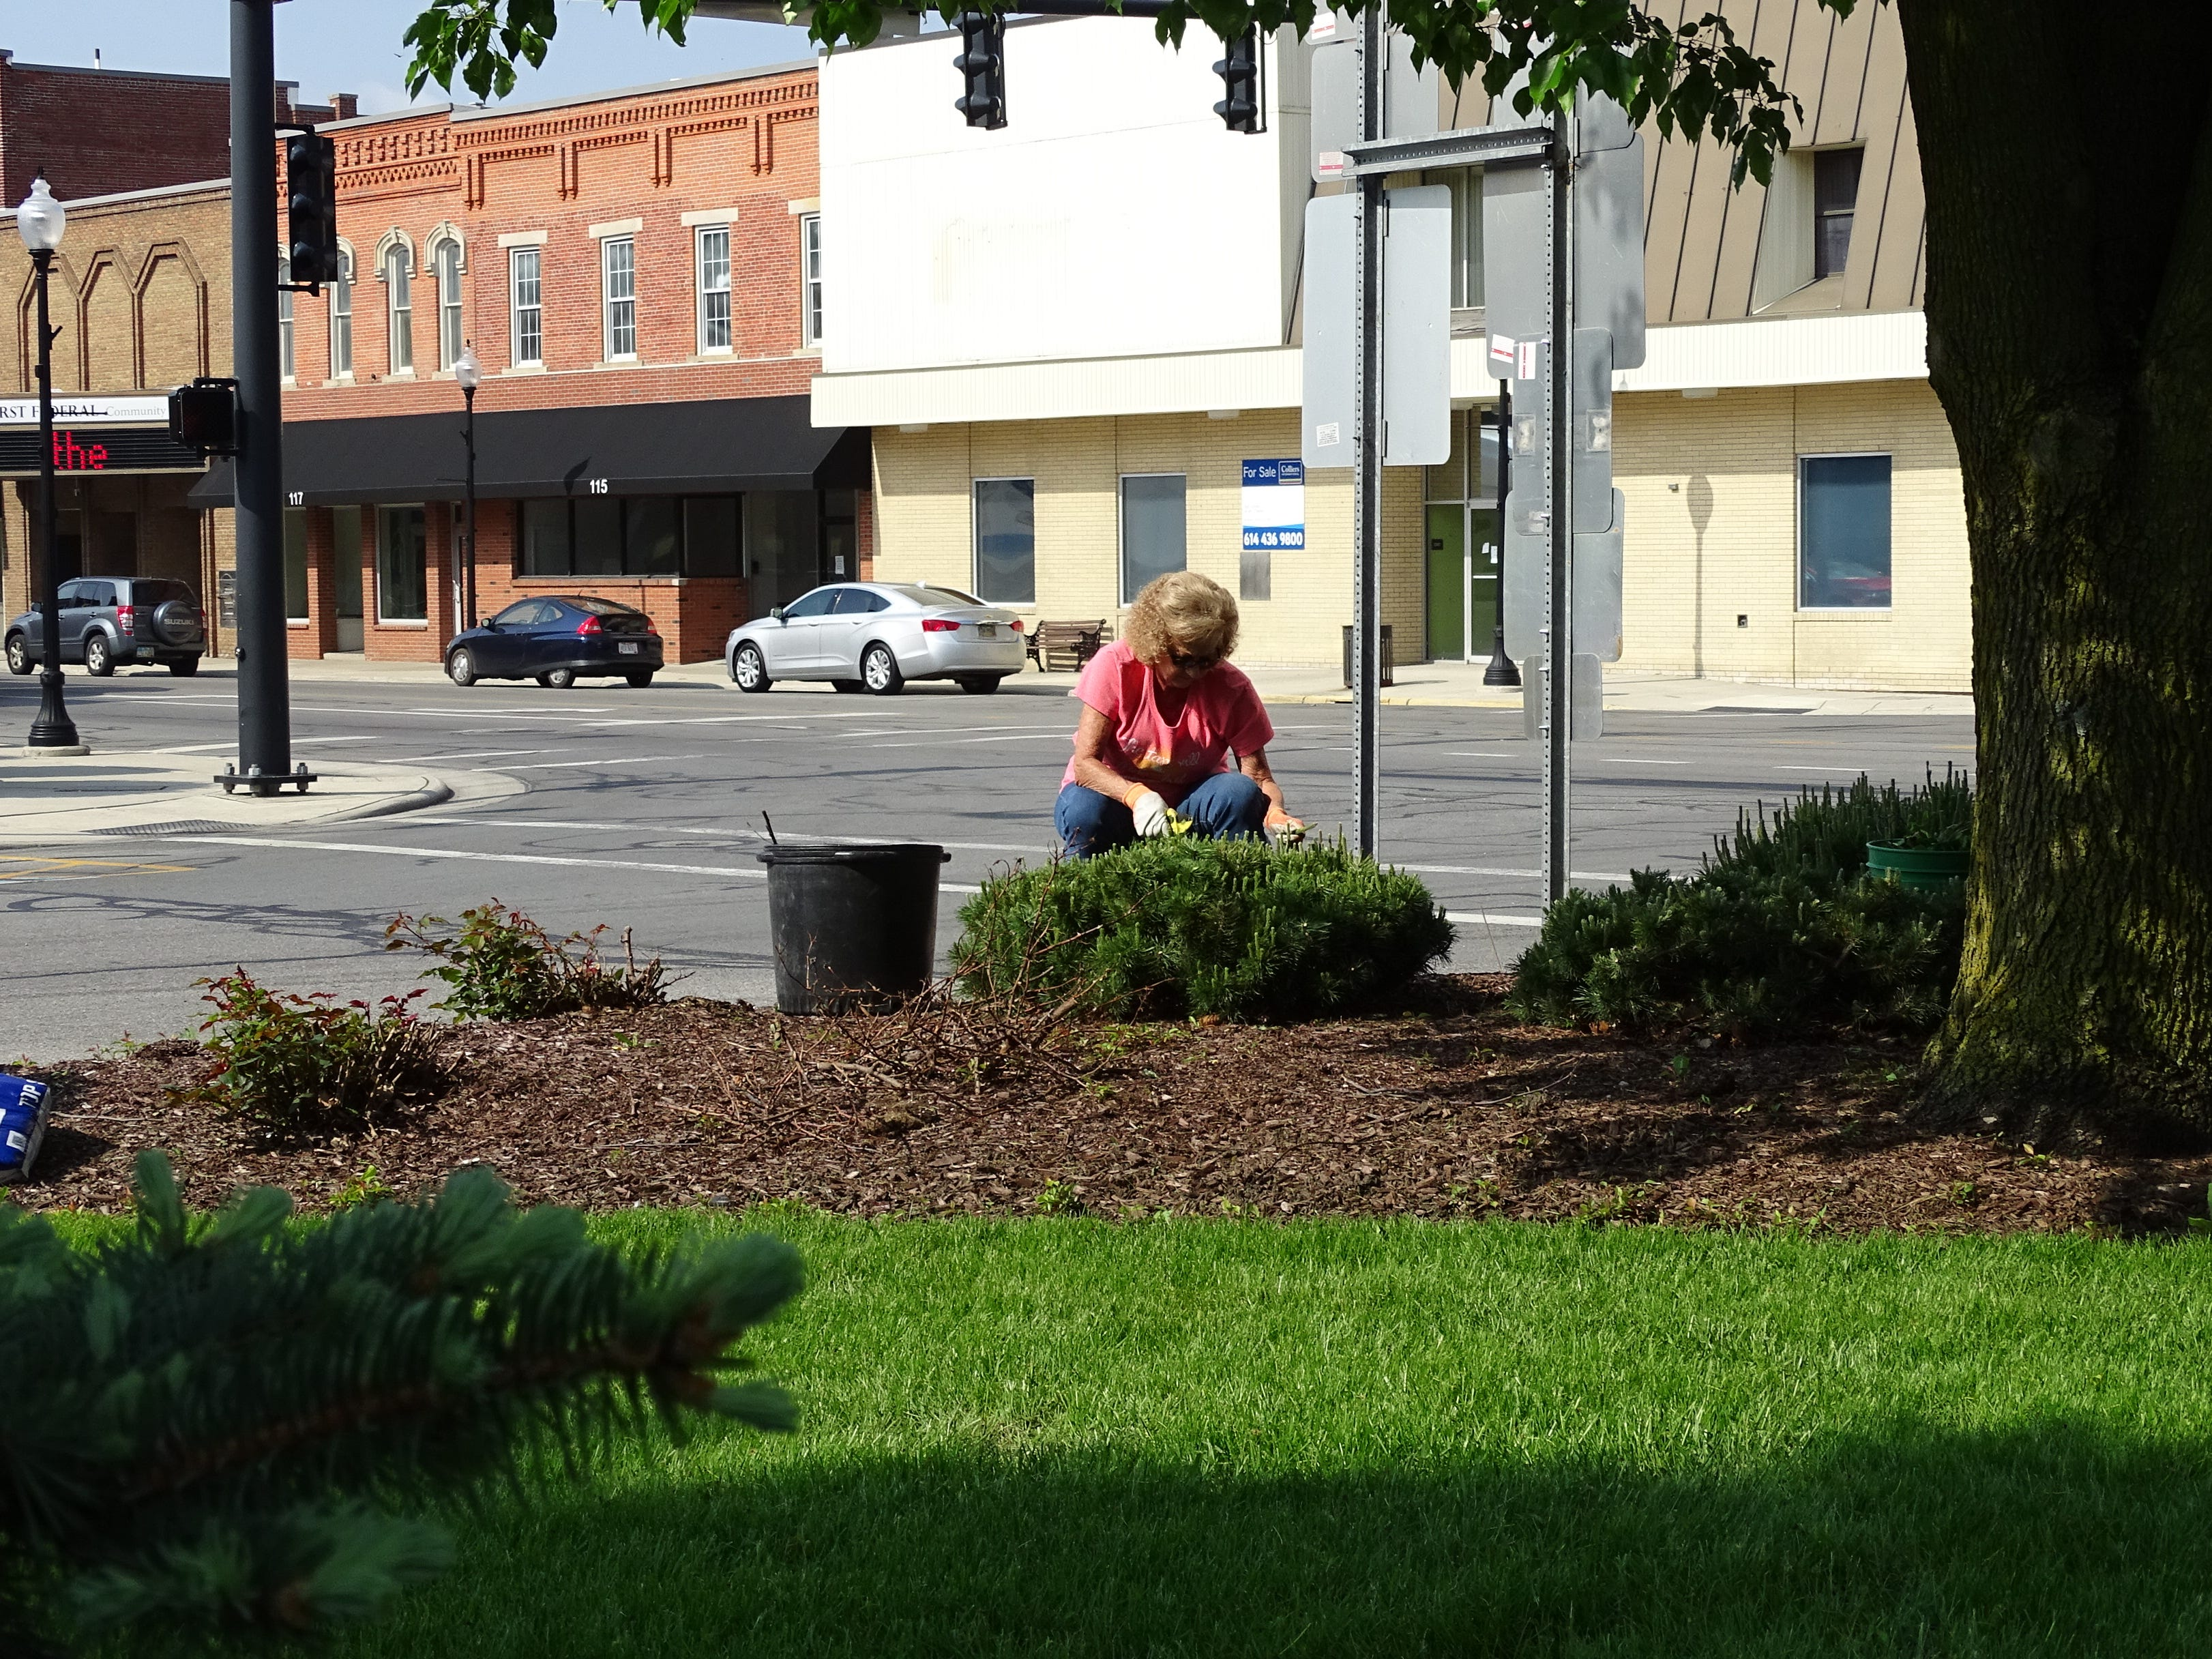 Marylyn Strang, who's a member of both the Earth, Wind and Flowers and Bucyrus Rotary clubs, cleans up the landscaping at Washington Square in downtown Bucyrus on Thursday morning.